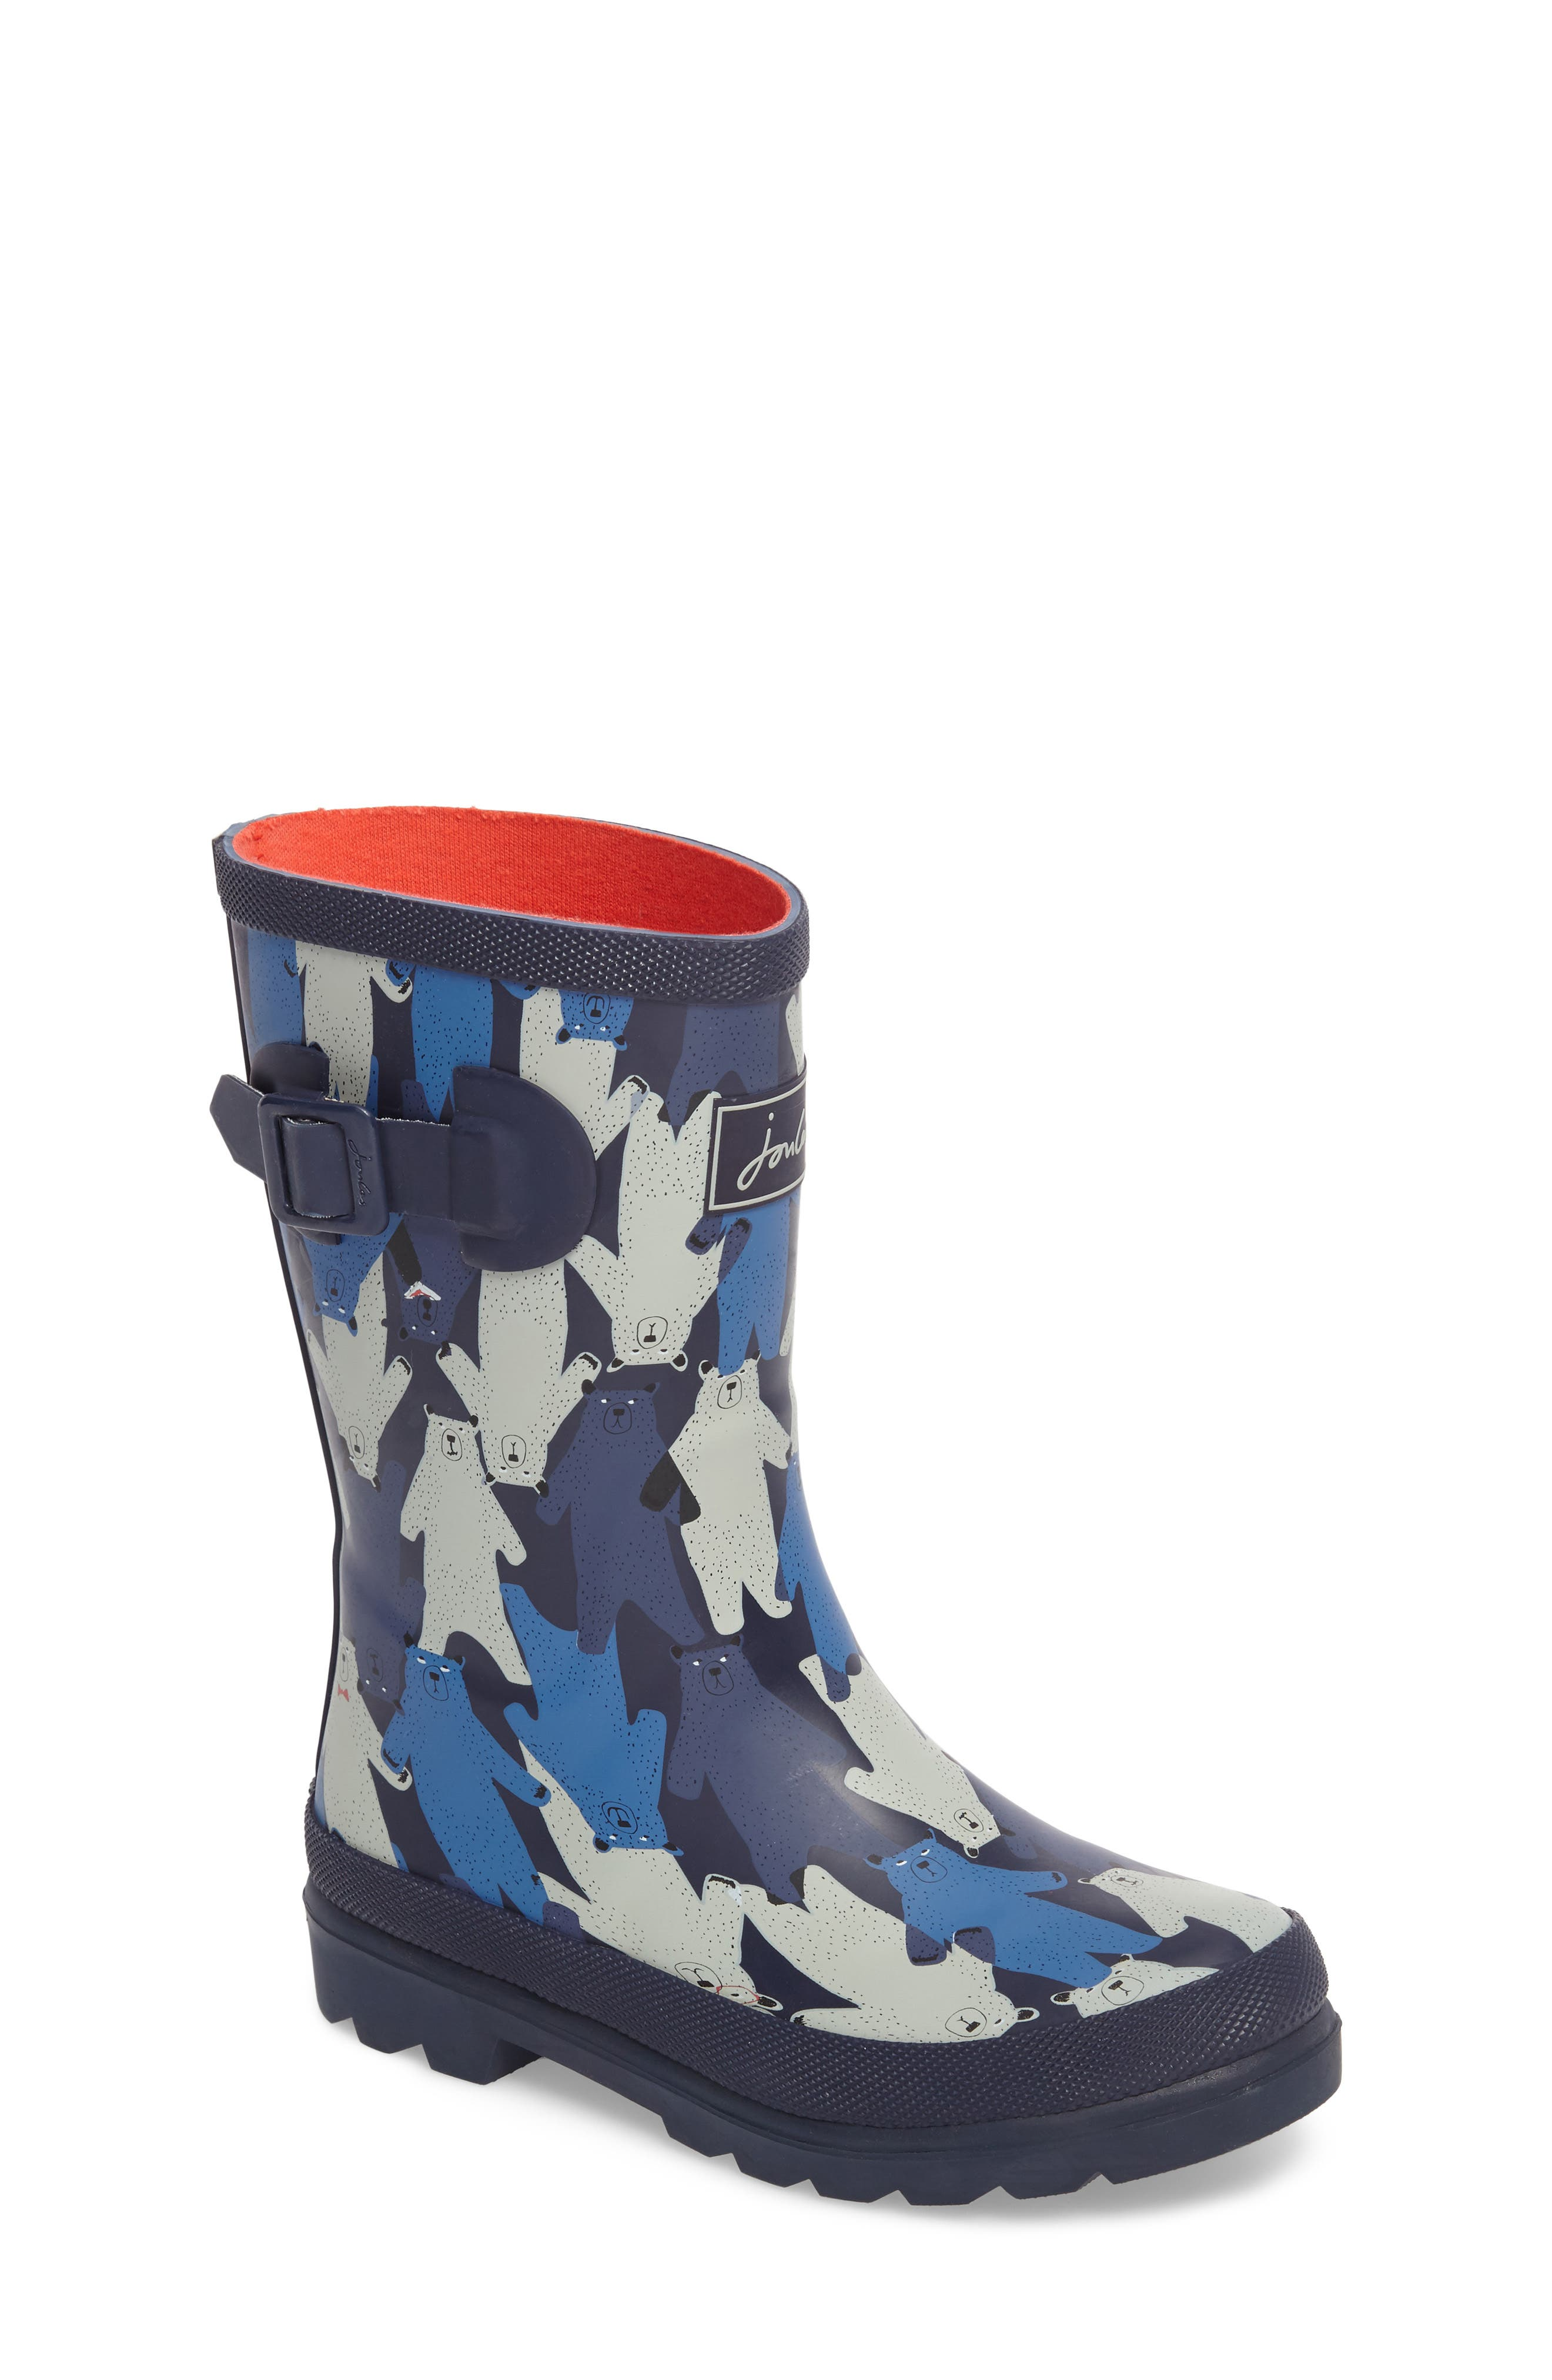 Main Image - Joules Printed Waterproof Rain Boot (Toddler, Little Kid & Big Kid)